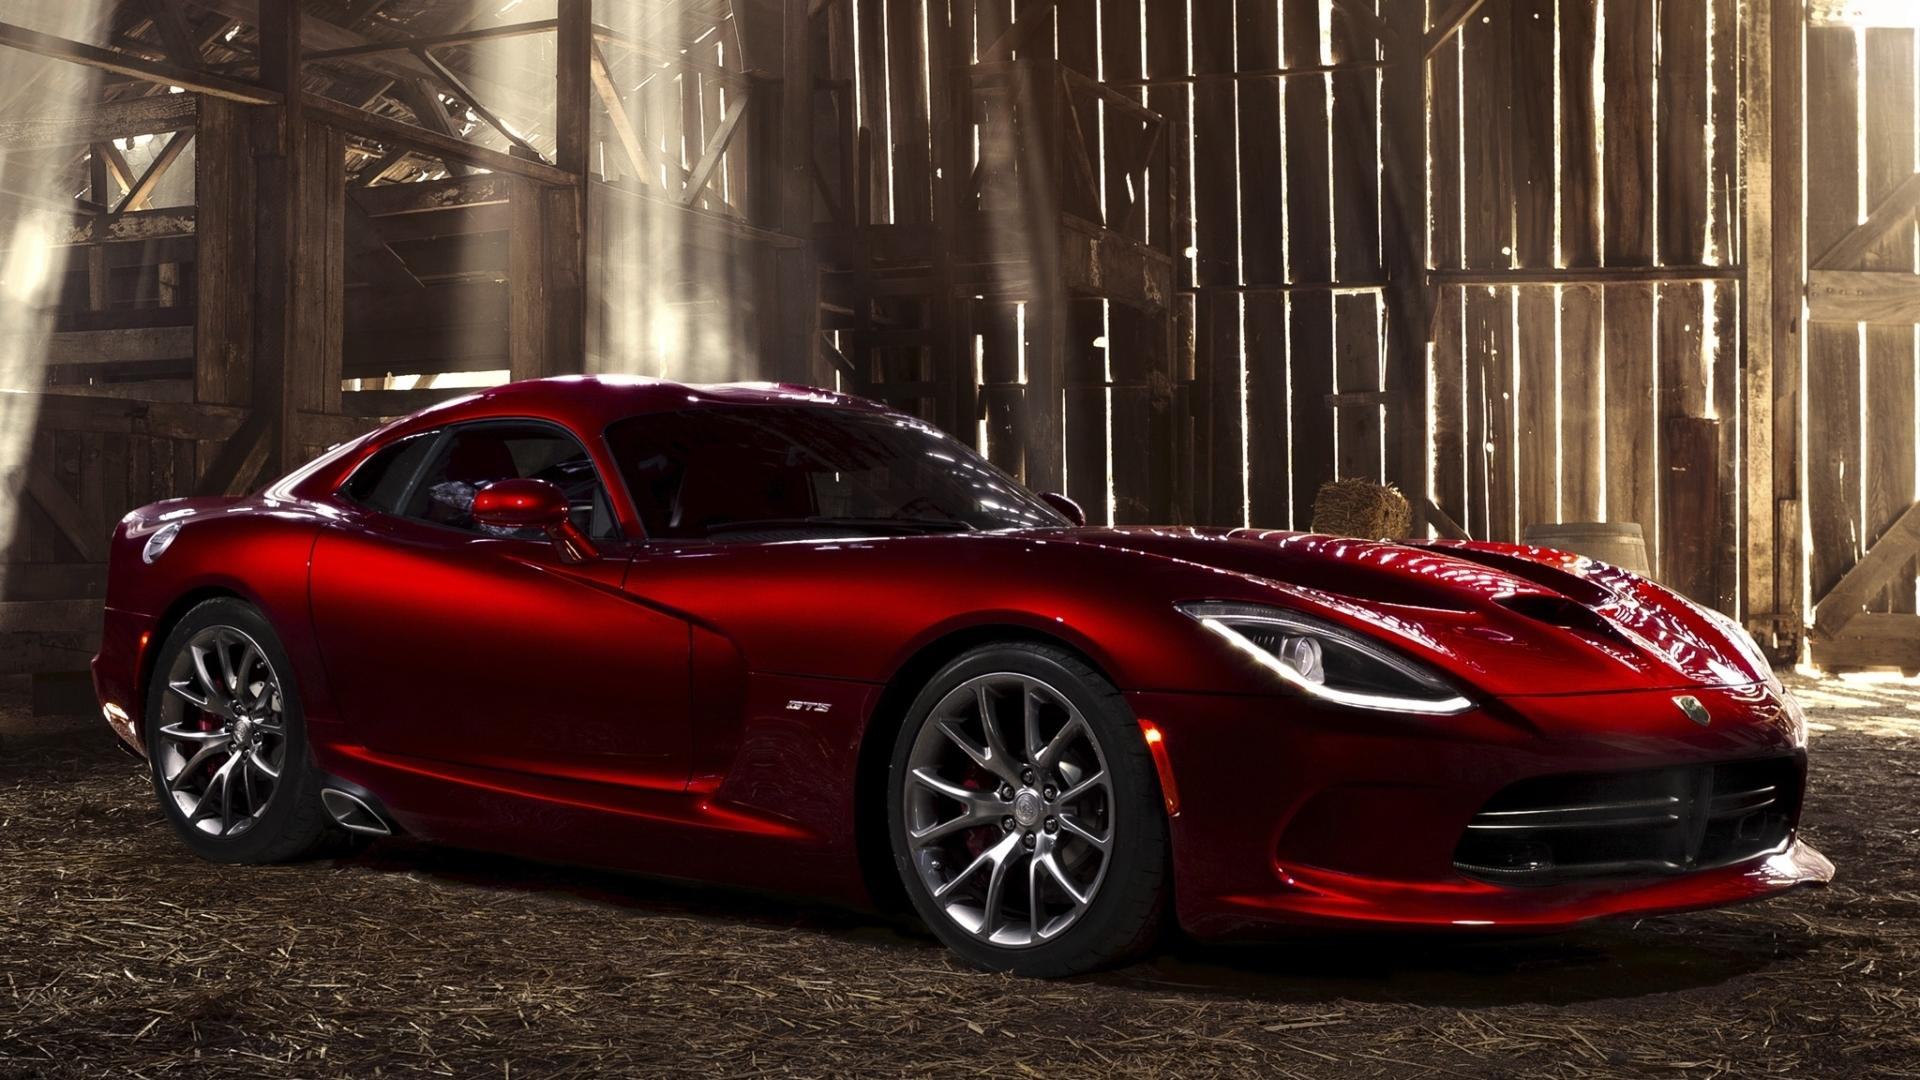 dodge viper 2015 wallpapers high quality download free - Dodge Viper 2015